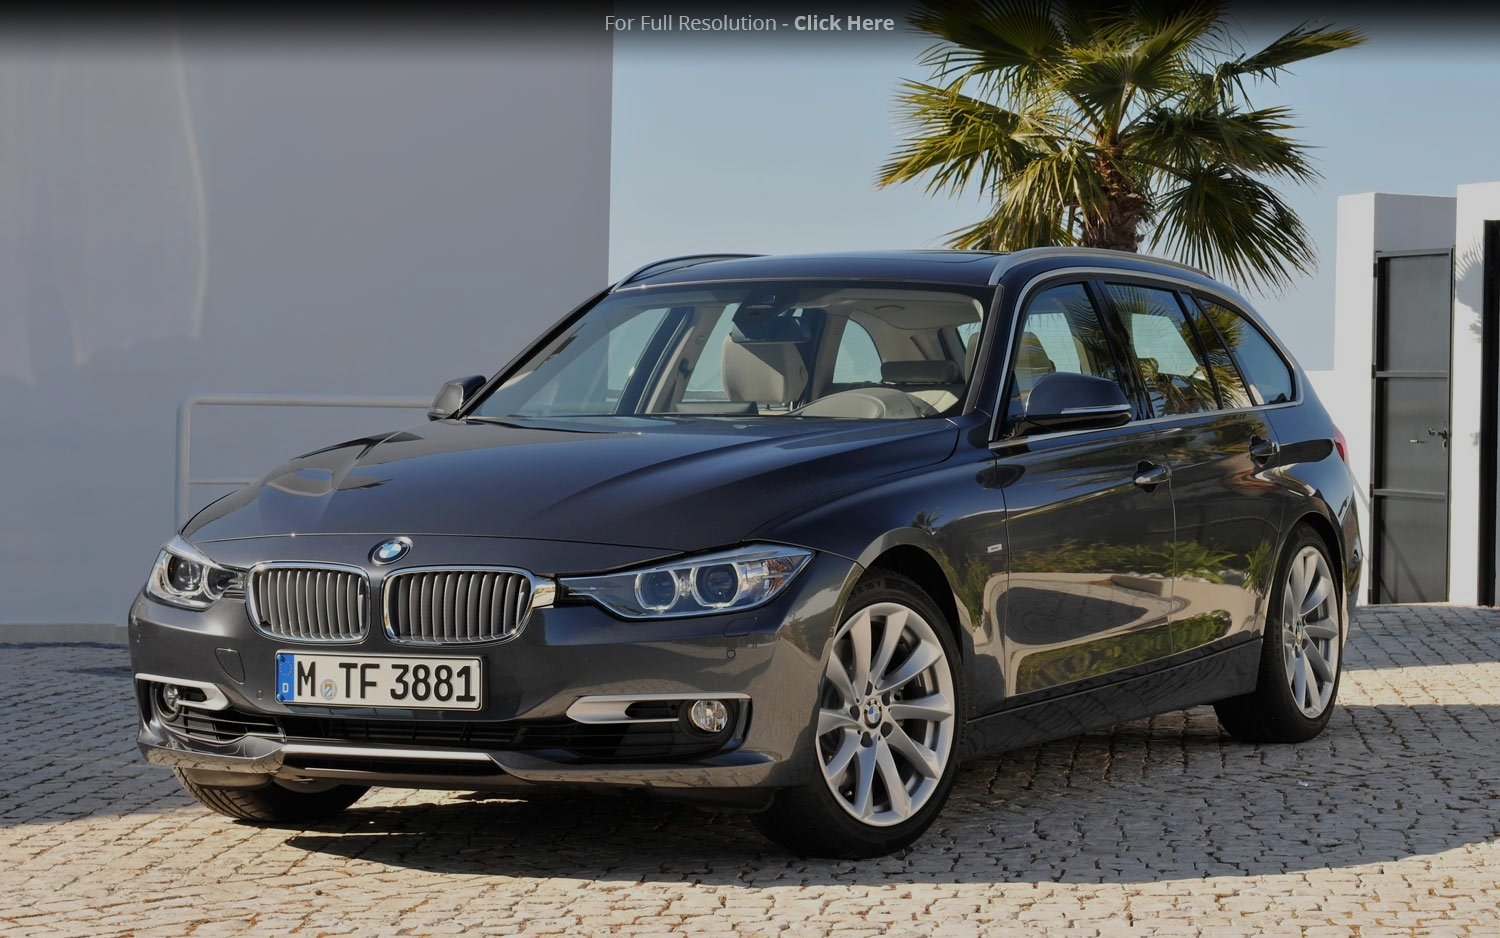 BMW 3 series 330d 2013 photo - 3